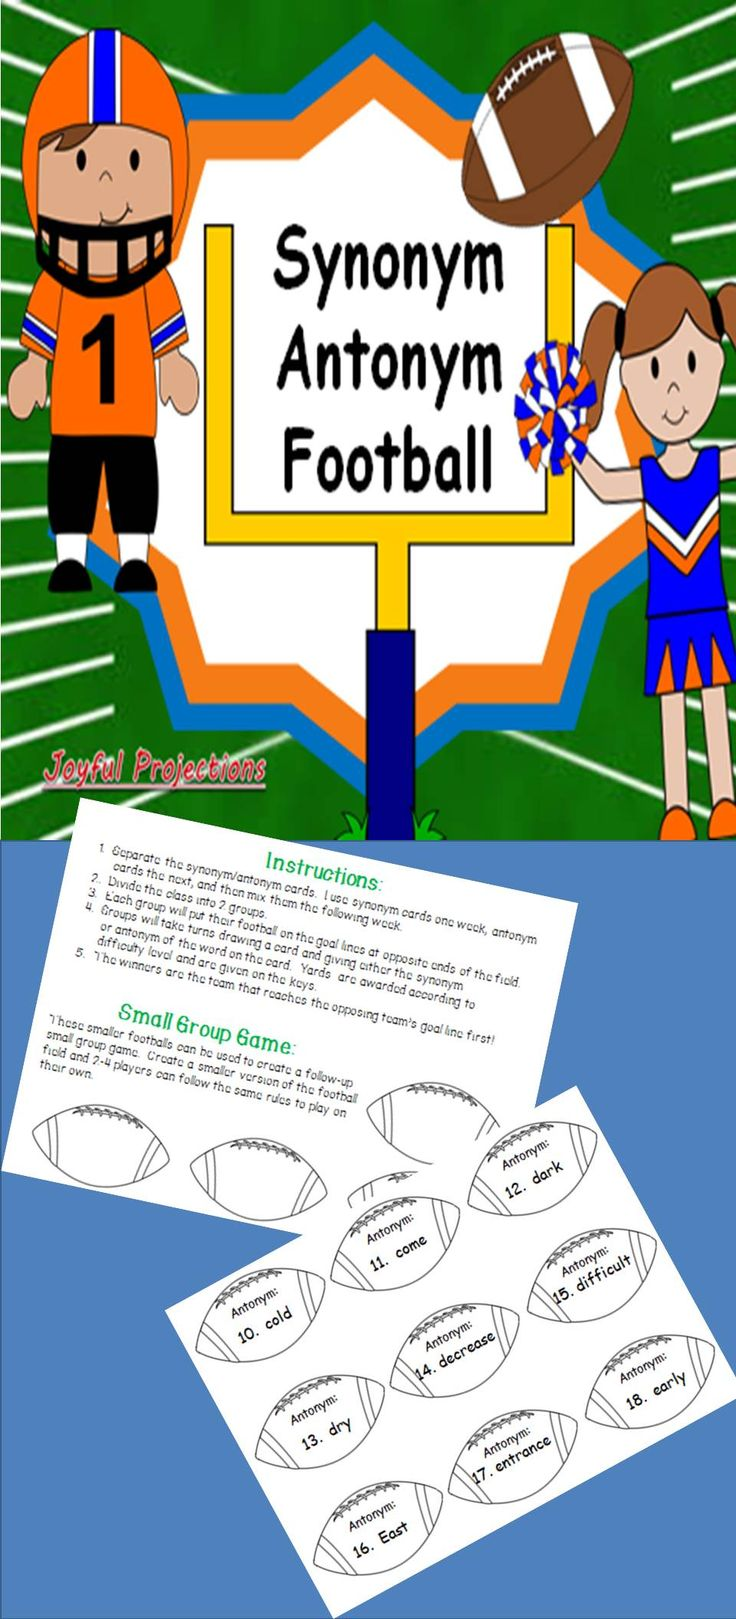 Students will read a word from a football shaped card and then correctly give either the synonym or antonym. If answered correctly their team will march along the field towards the goal line for a touchdown! Practice synonyms, then antonyms, then mix them together! Game can be produced as a whole group activity as well as a small group game.